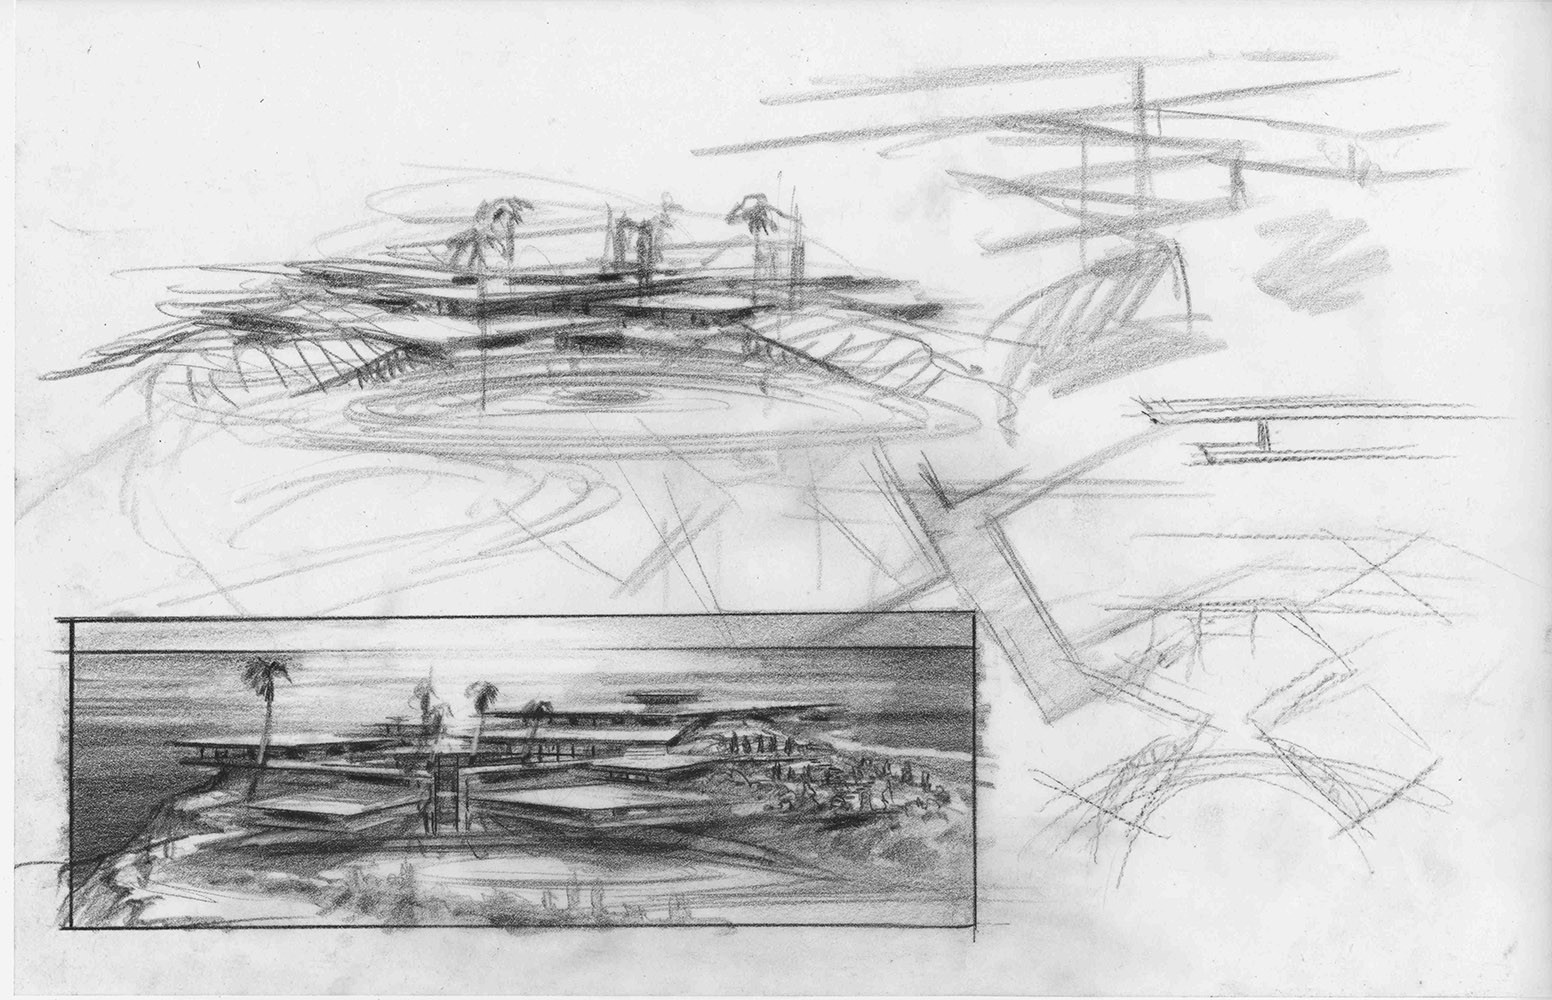 Earlier pencil exploration of more rectilinear cantilevered structures. The basic layout still remains the same in the final version, with the guest house cantilevered over the driveway.